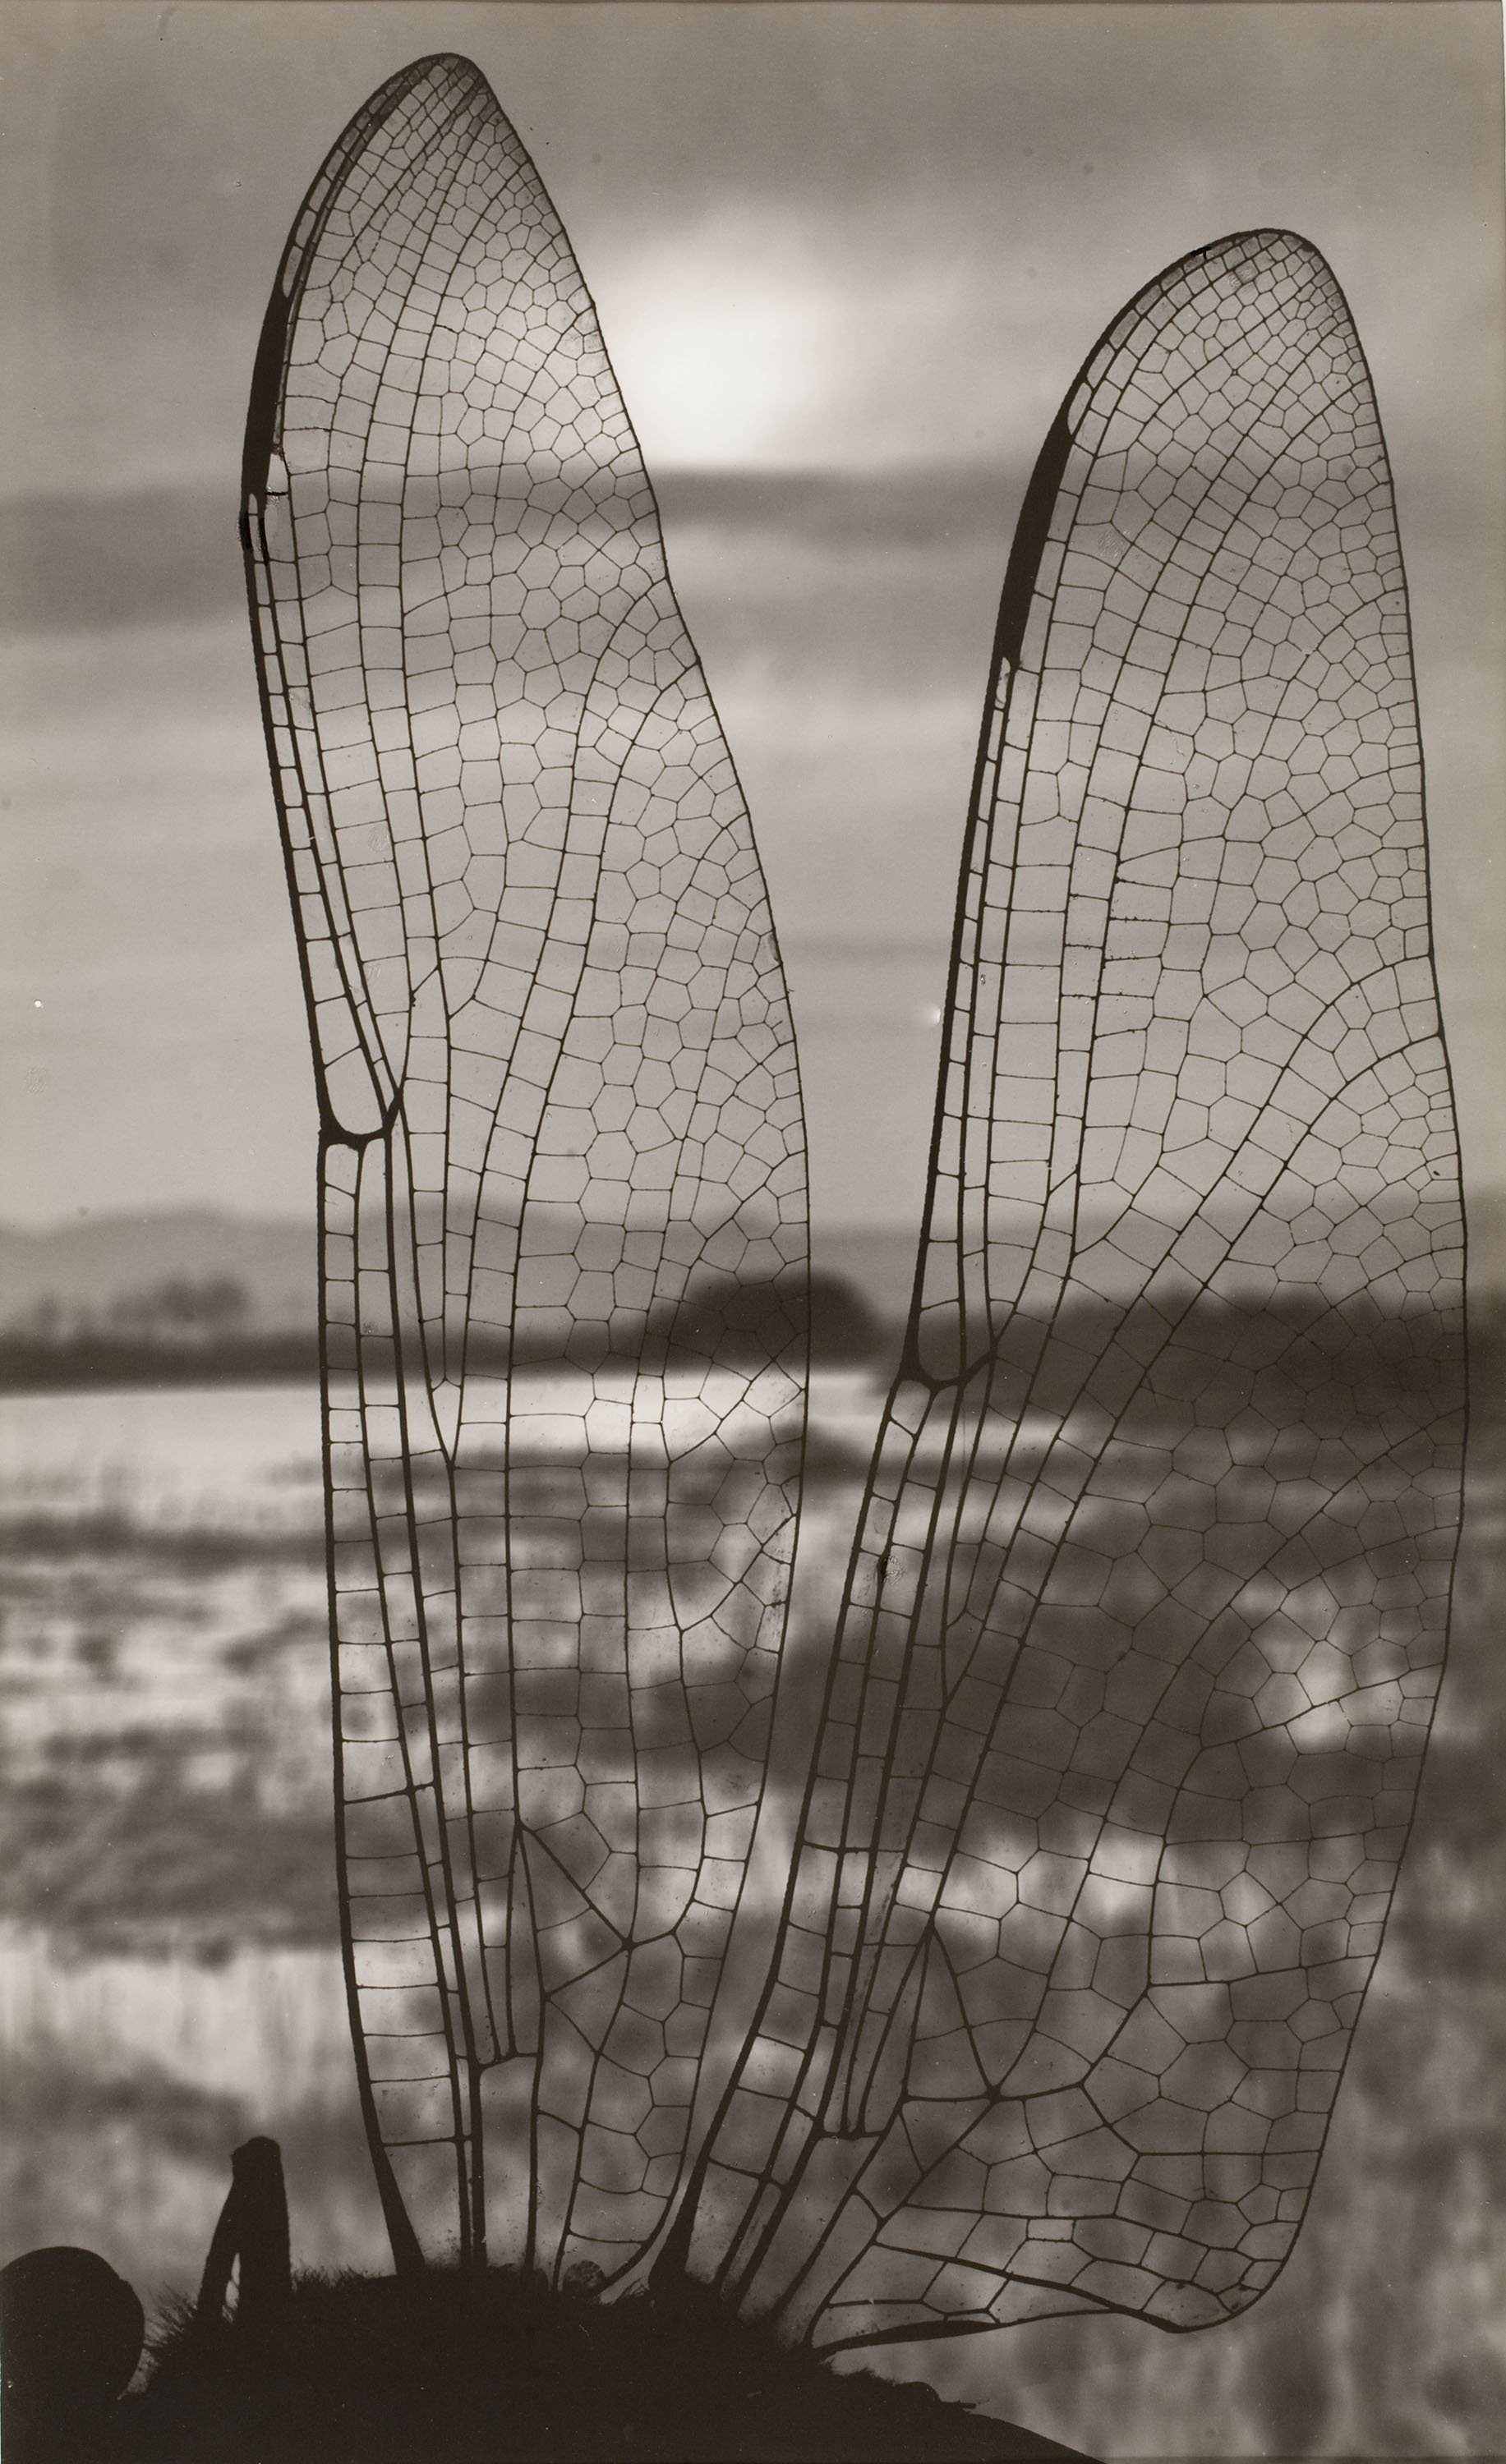 Emili Godes - Landscape Through Dragonfly's Wings - Circa 1930